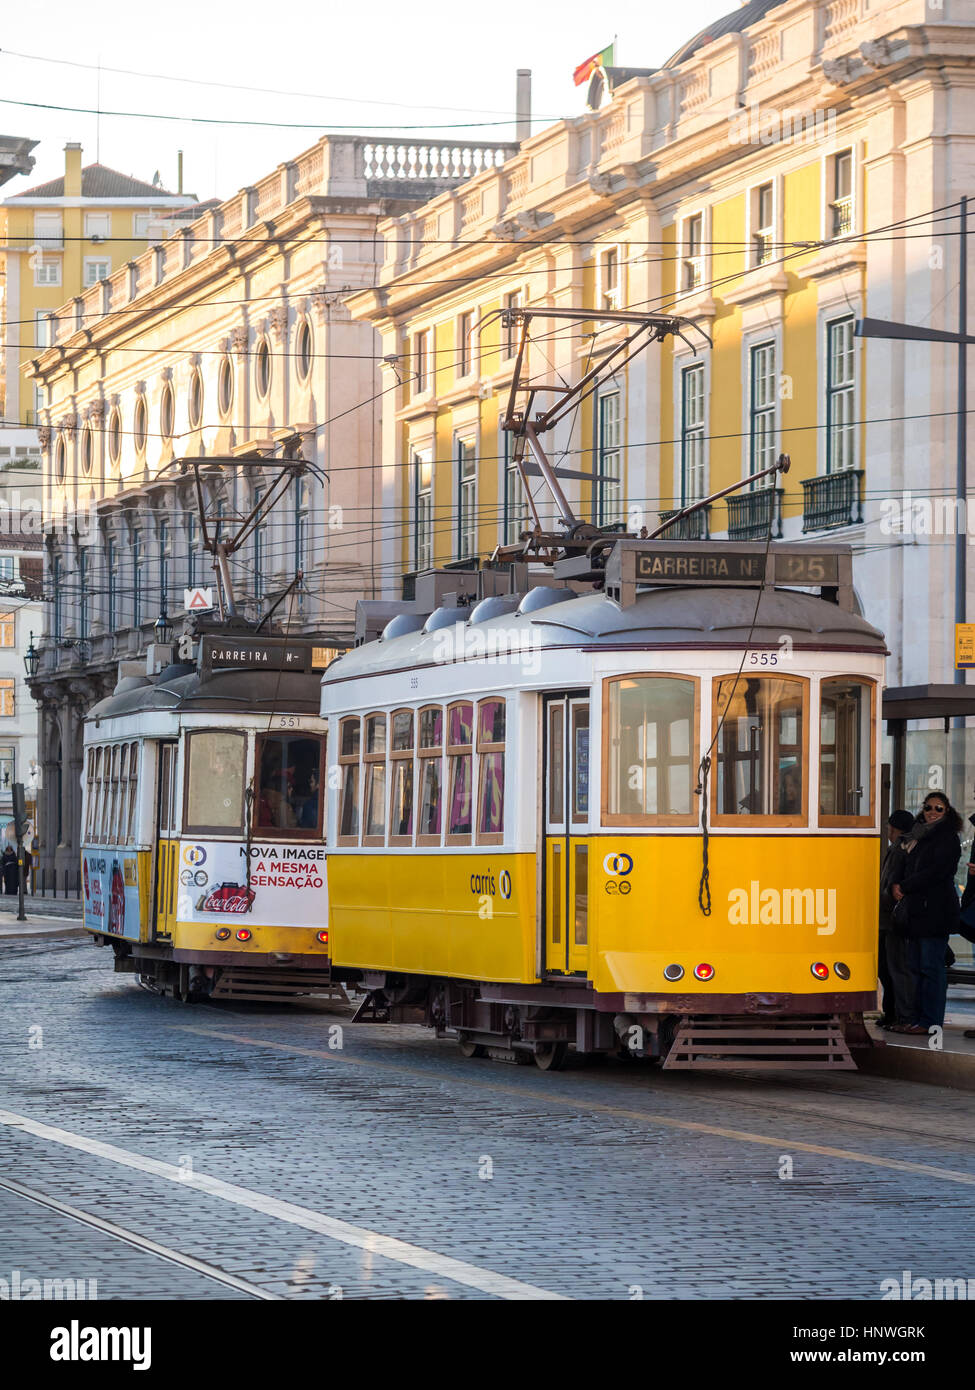 LISBON, PORTUGAL - JANUARY 10, 2017: Old trams on the Praca do Comercio (Commerce Square) in Lisbon, Portugal. - Stock Image